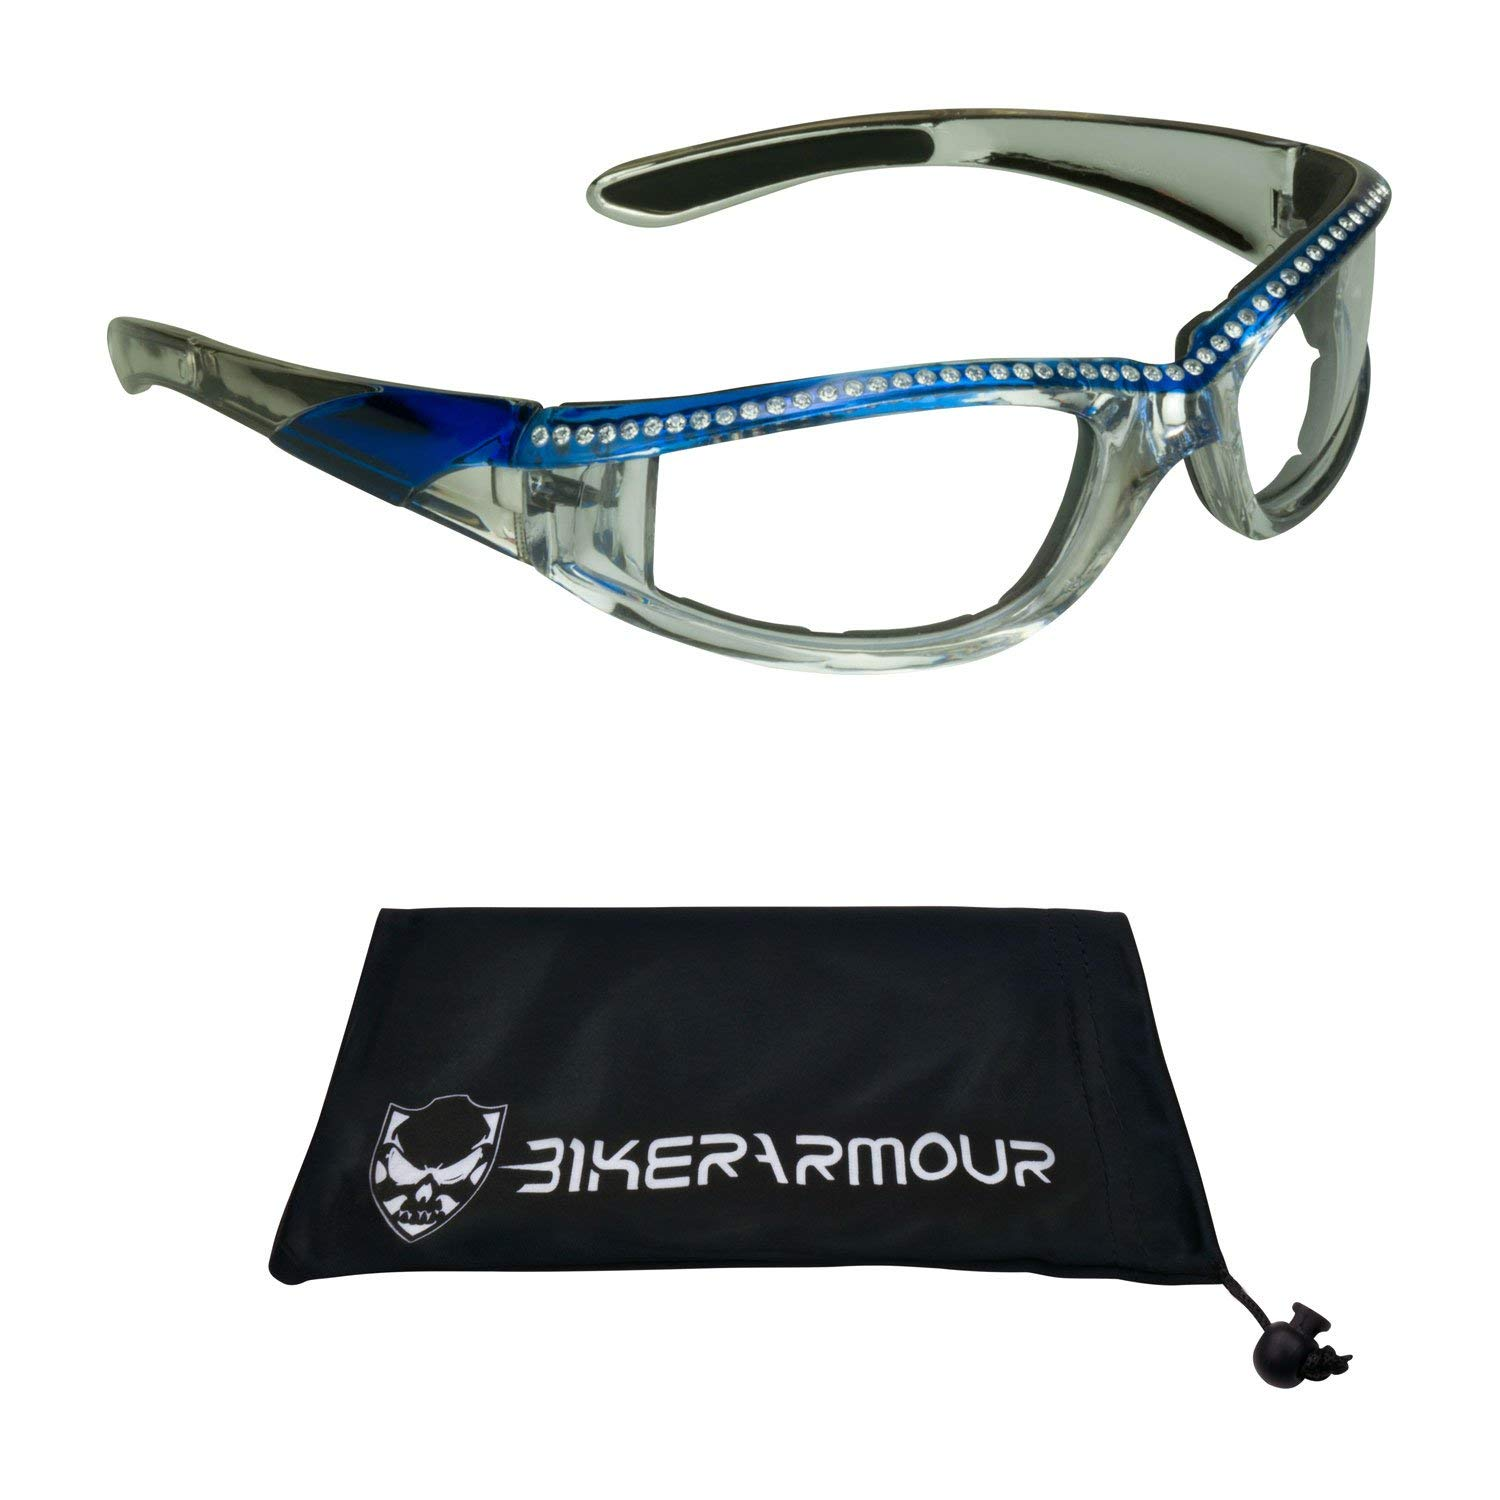 8fbdb82d3ee Get Quotations · Motorcycle Day Night Transition Glasses for Women. Chrome  and Black frame with rhinestones (Blue